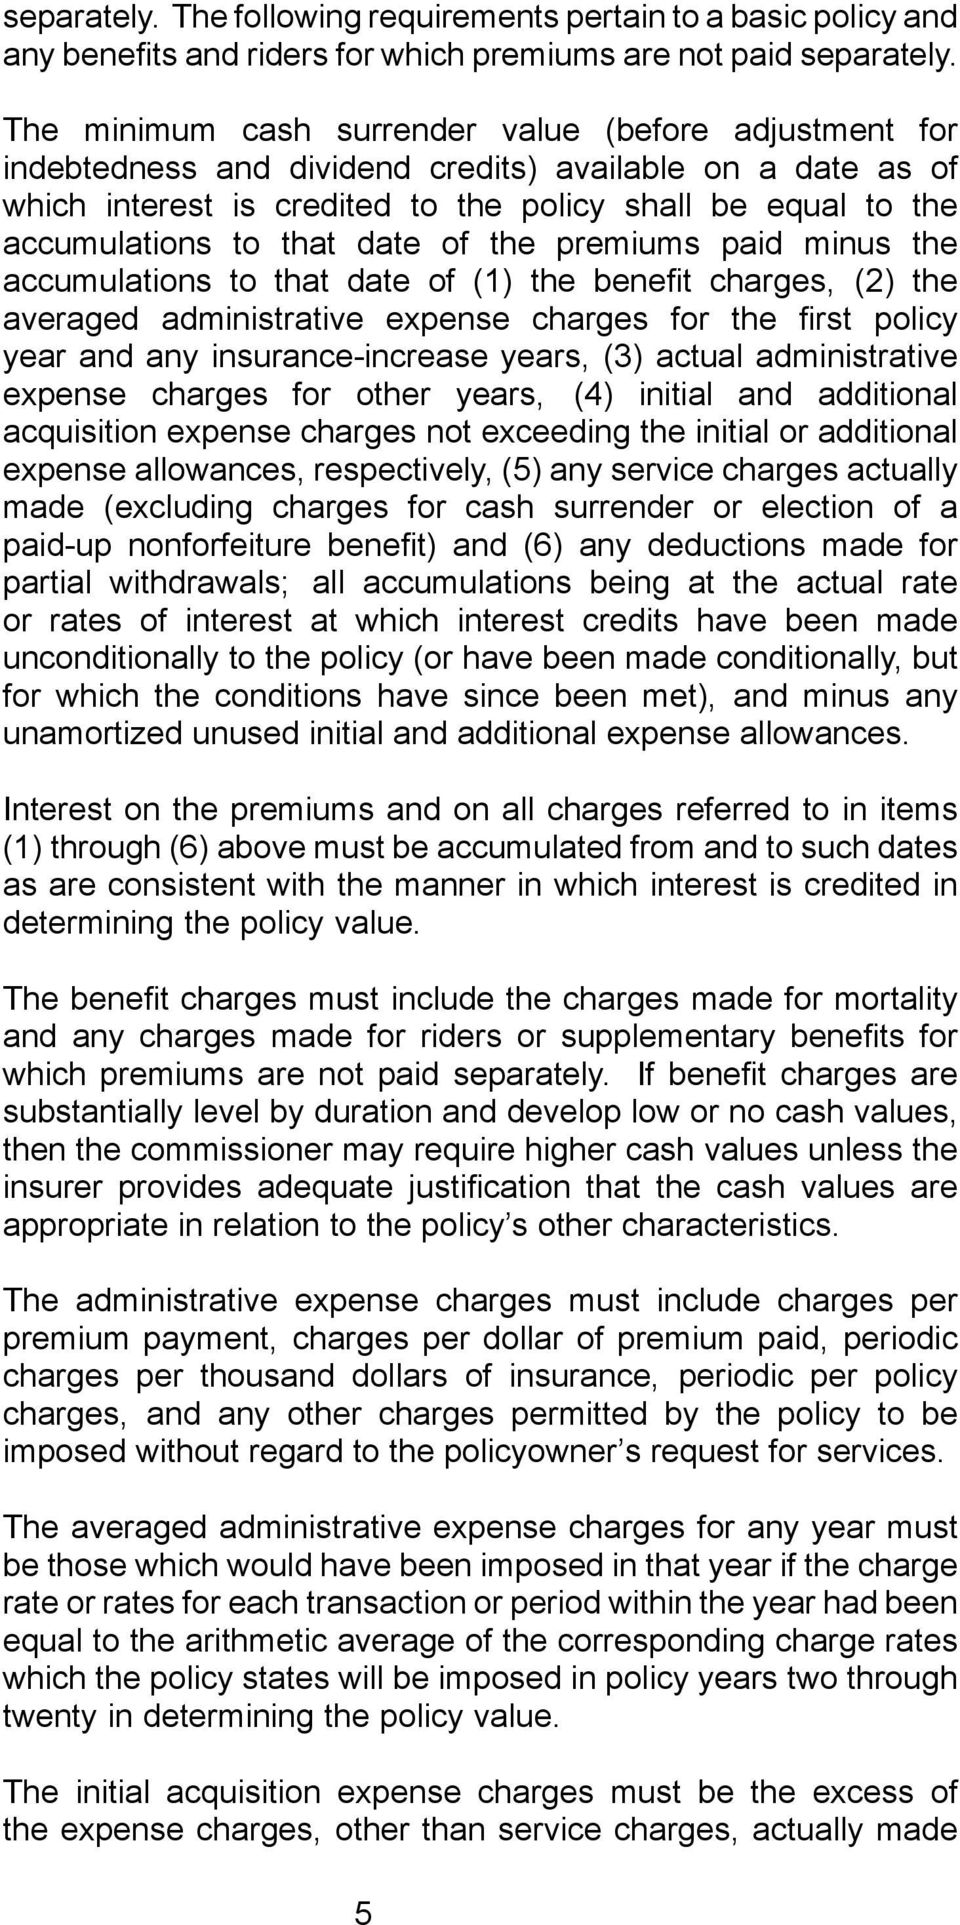 that date of the premiums paid minus the accumulations to that date of (1) the bene t charges, (2) the averaged administrative expense charges for the rst policy year and any insurance-increase